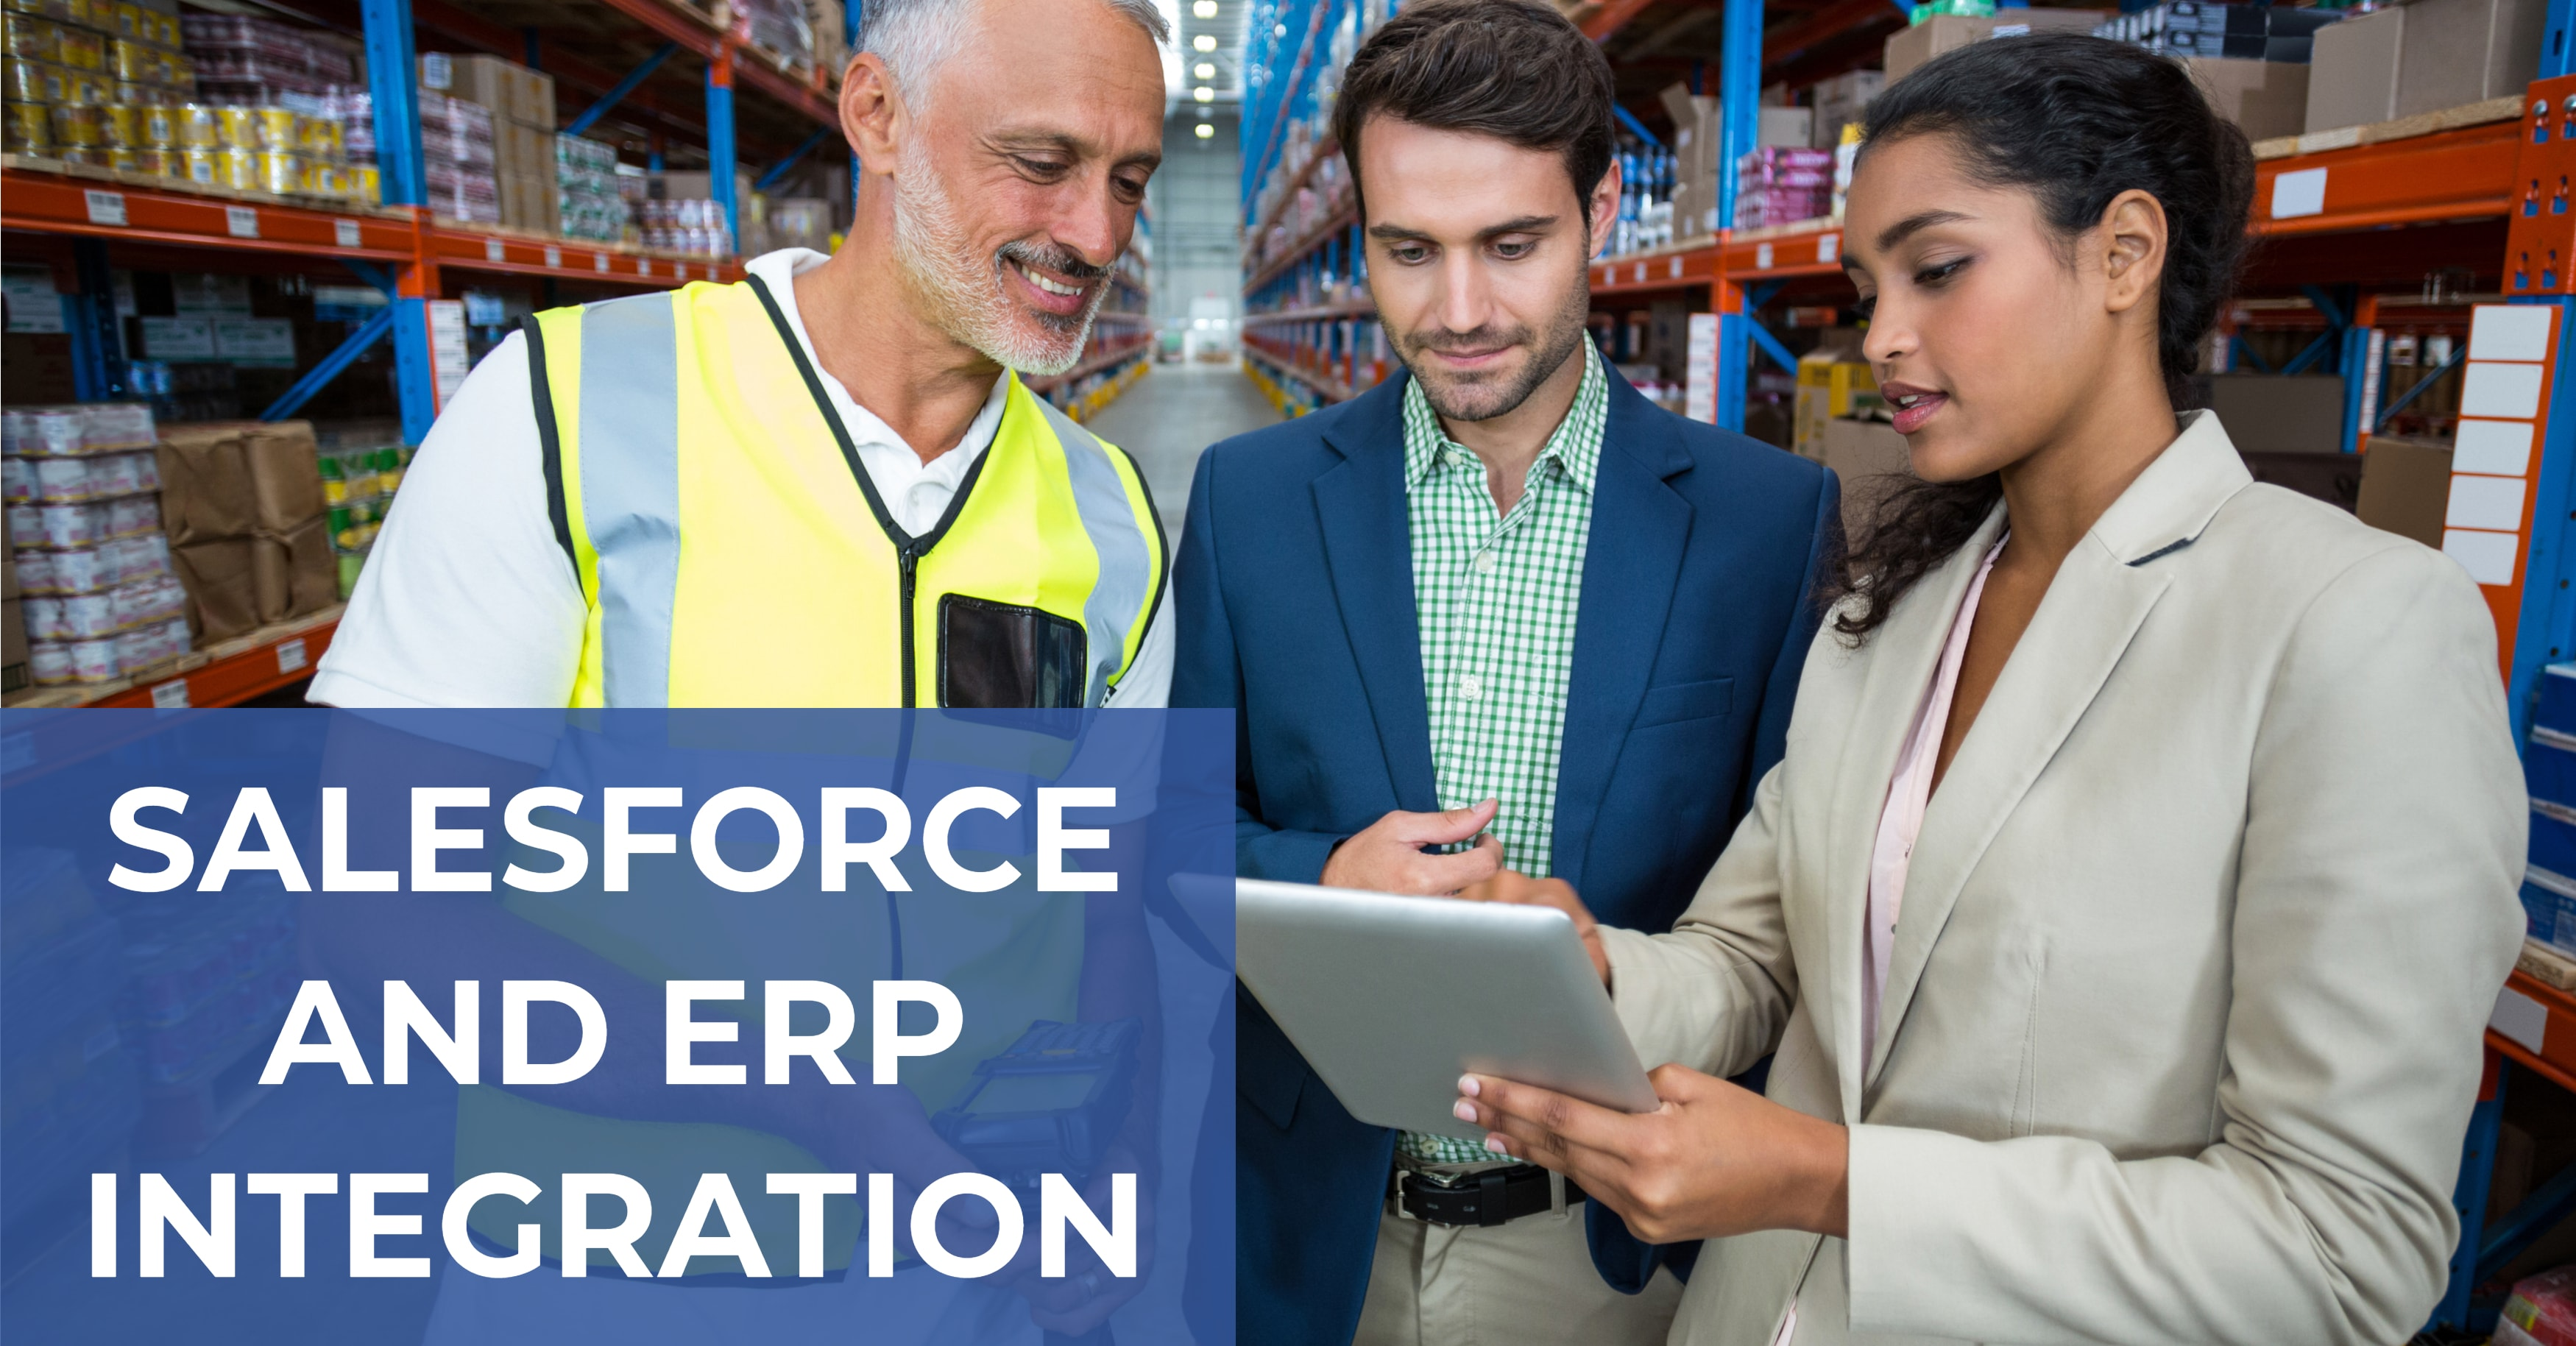 Should You Integrate Salesforce CRM With Your ERP?